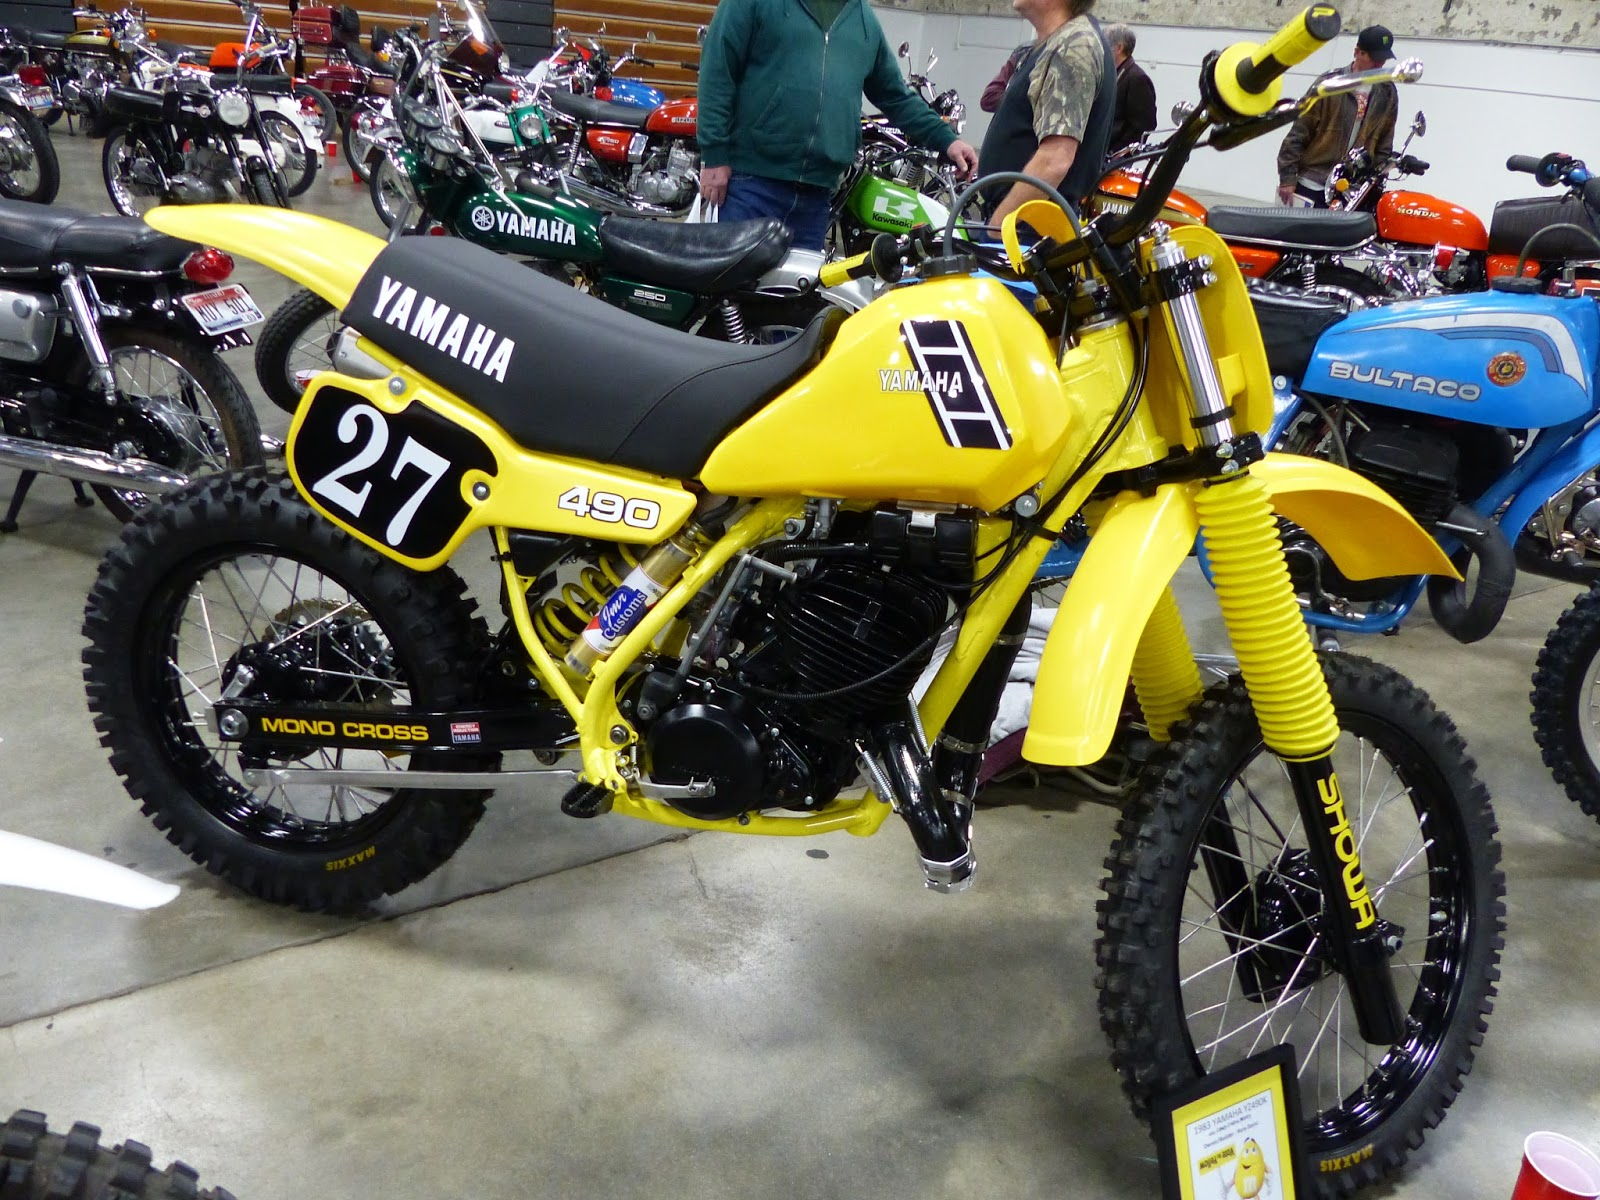 Oldmotodude 1983 Yamaha Yz490 On Display At The 2016